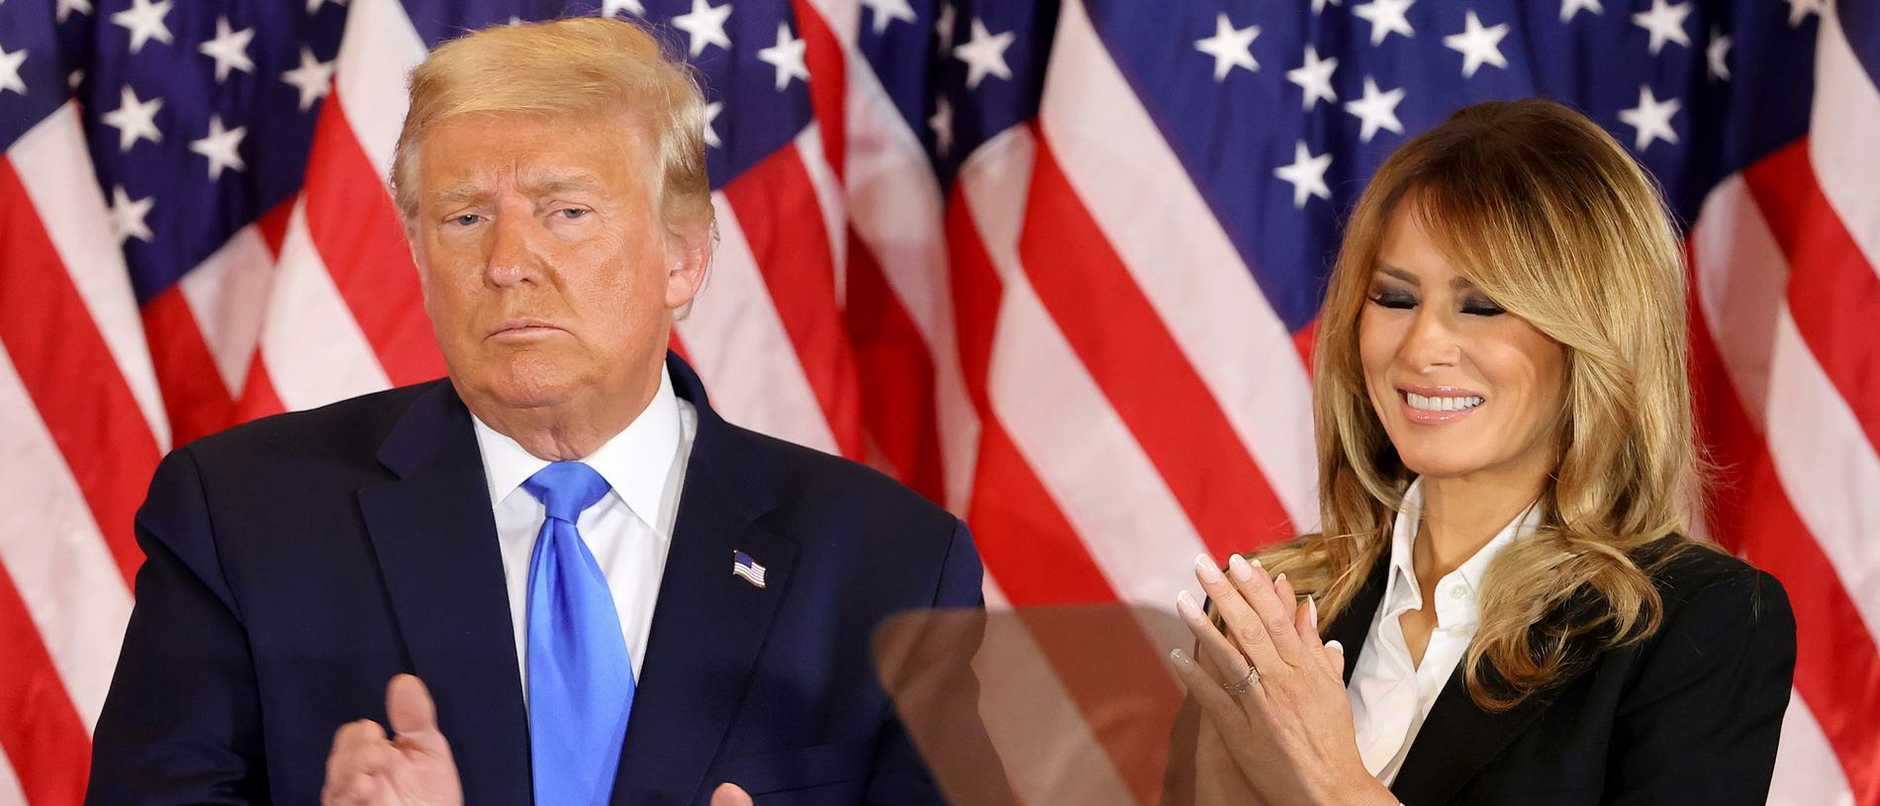 A claim of election fraud from President Donald Trump prompted a huge backlash from Twitter, as the US election result hangs in the balance.